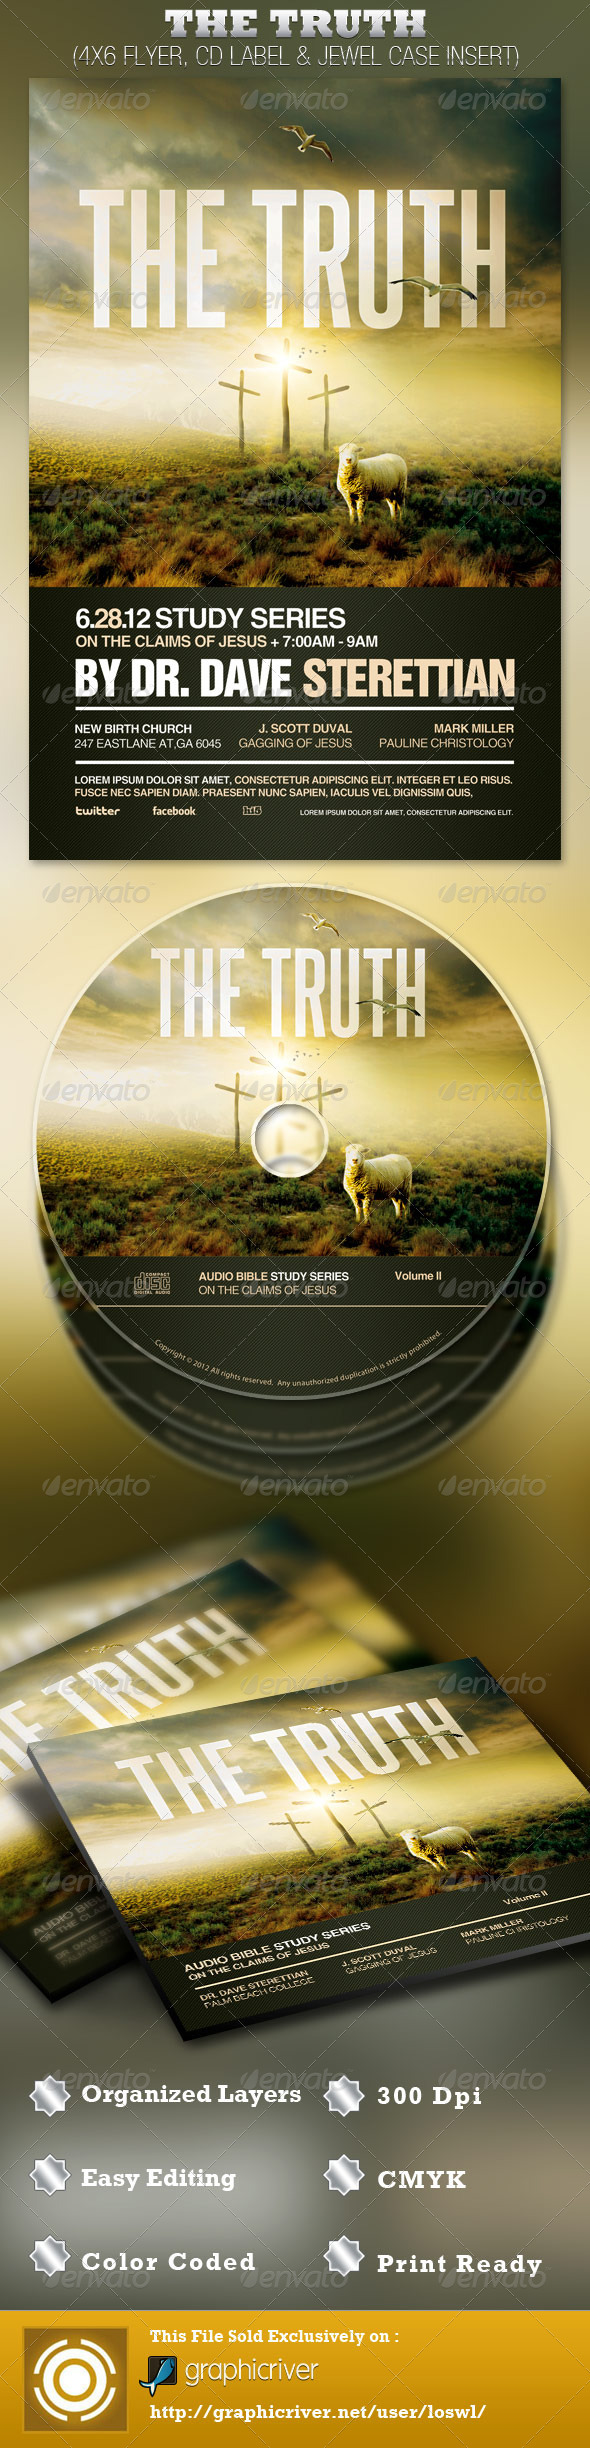 The Truth Church Flyer and CD Template